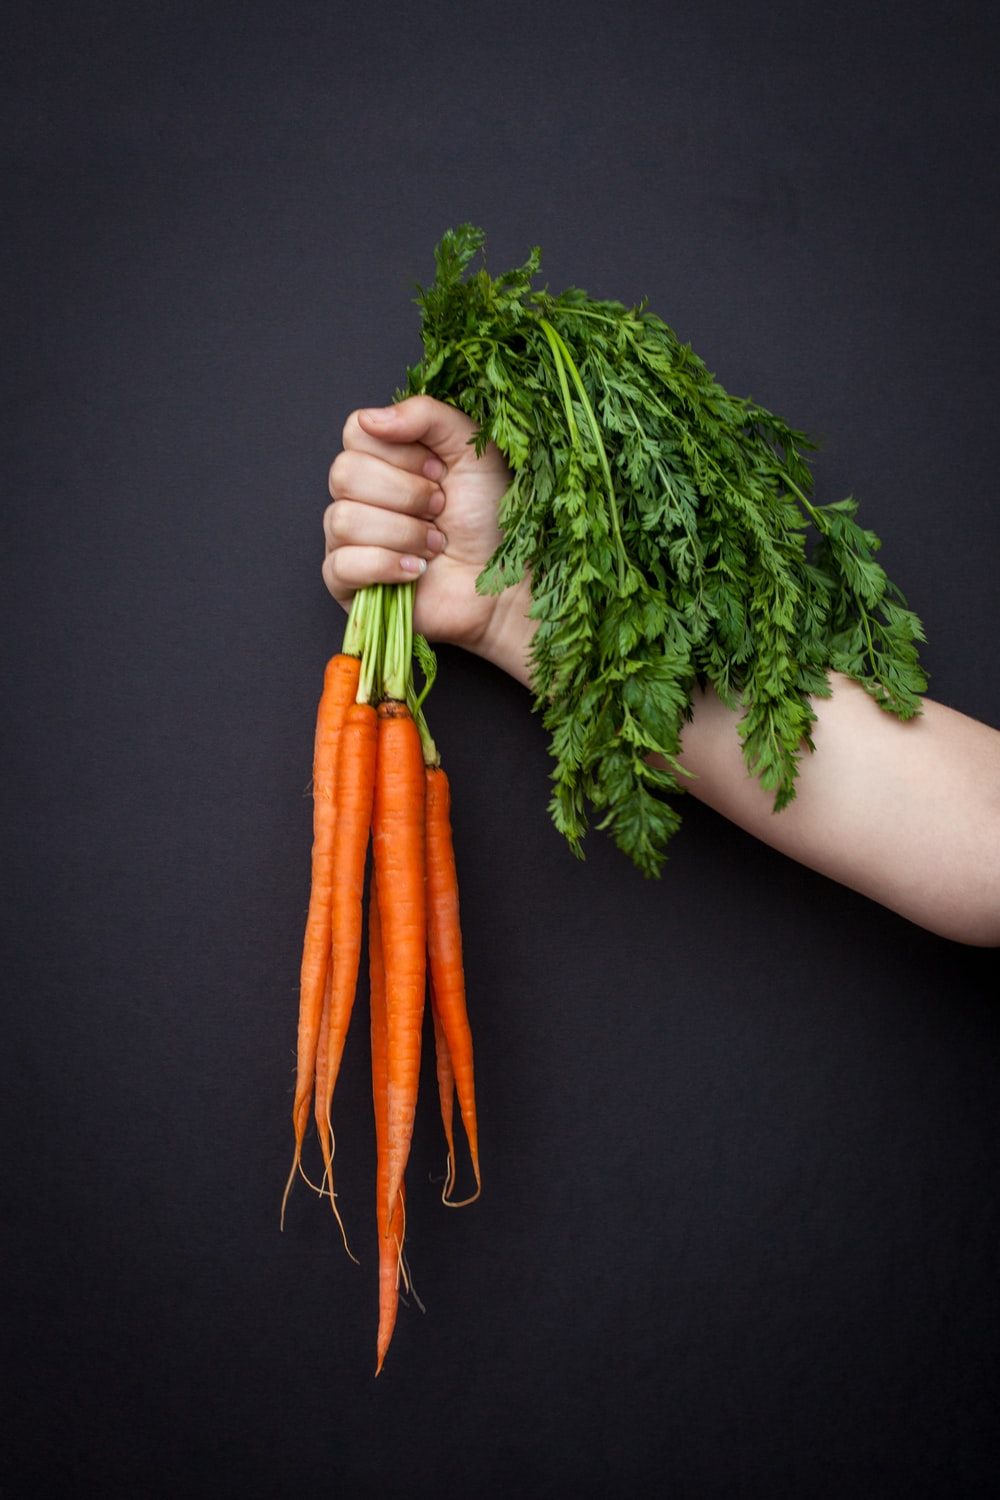 person holding carrots